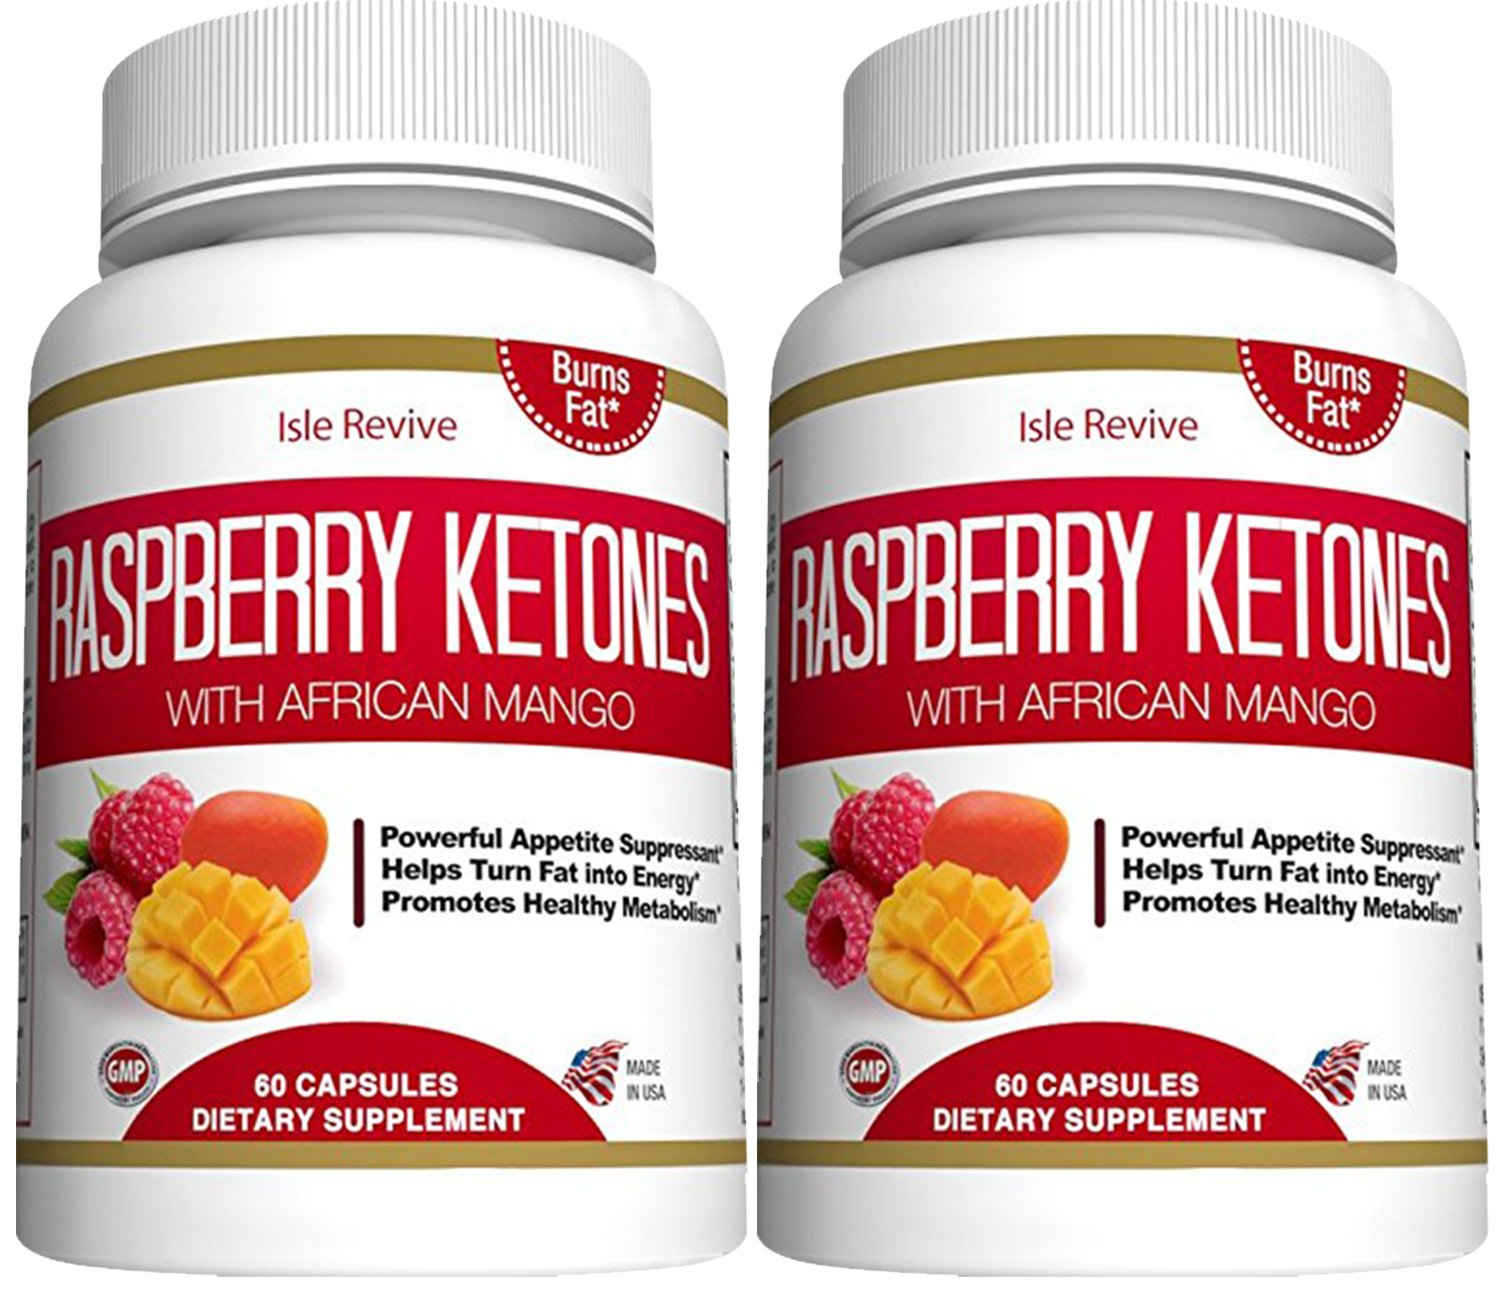 Raspberry Ketones Weight Loss Supplement - African Mango Green Tea Extract - Natural Thermogenic Fat Burner Promotes Appetite Control, Boosts Energy and Metabolism, 2 Bottles 60 Veggie Capsules